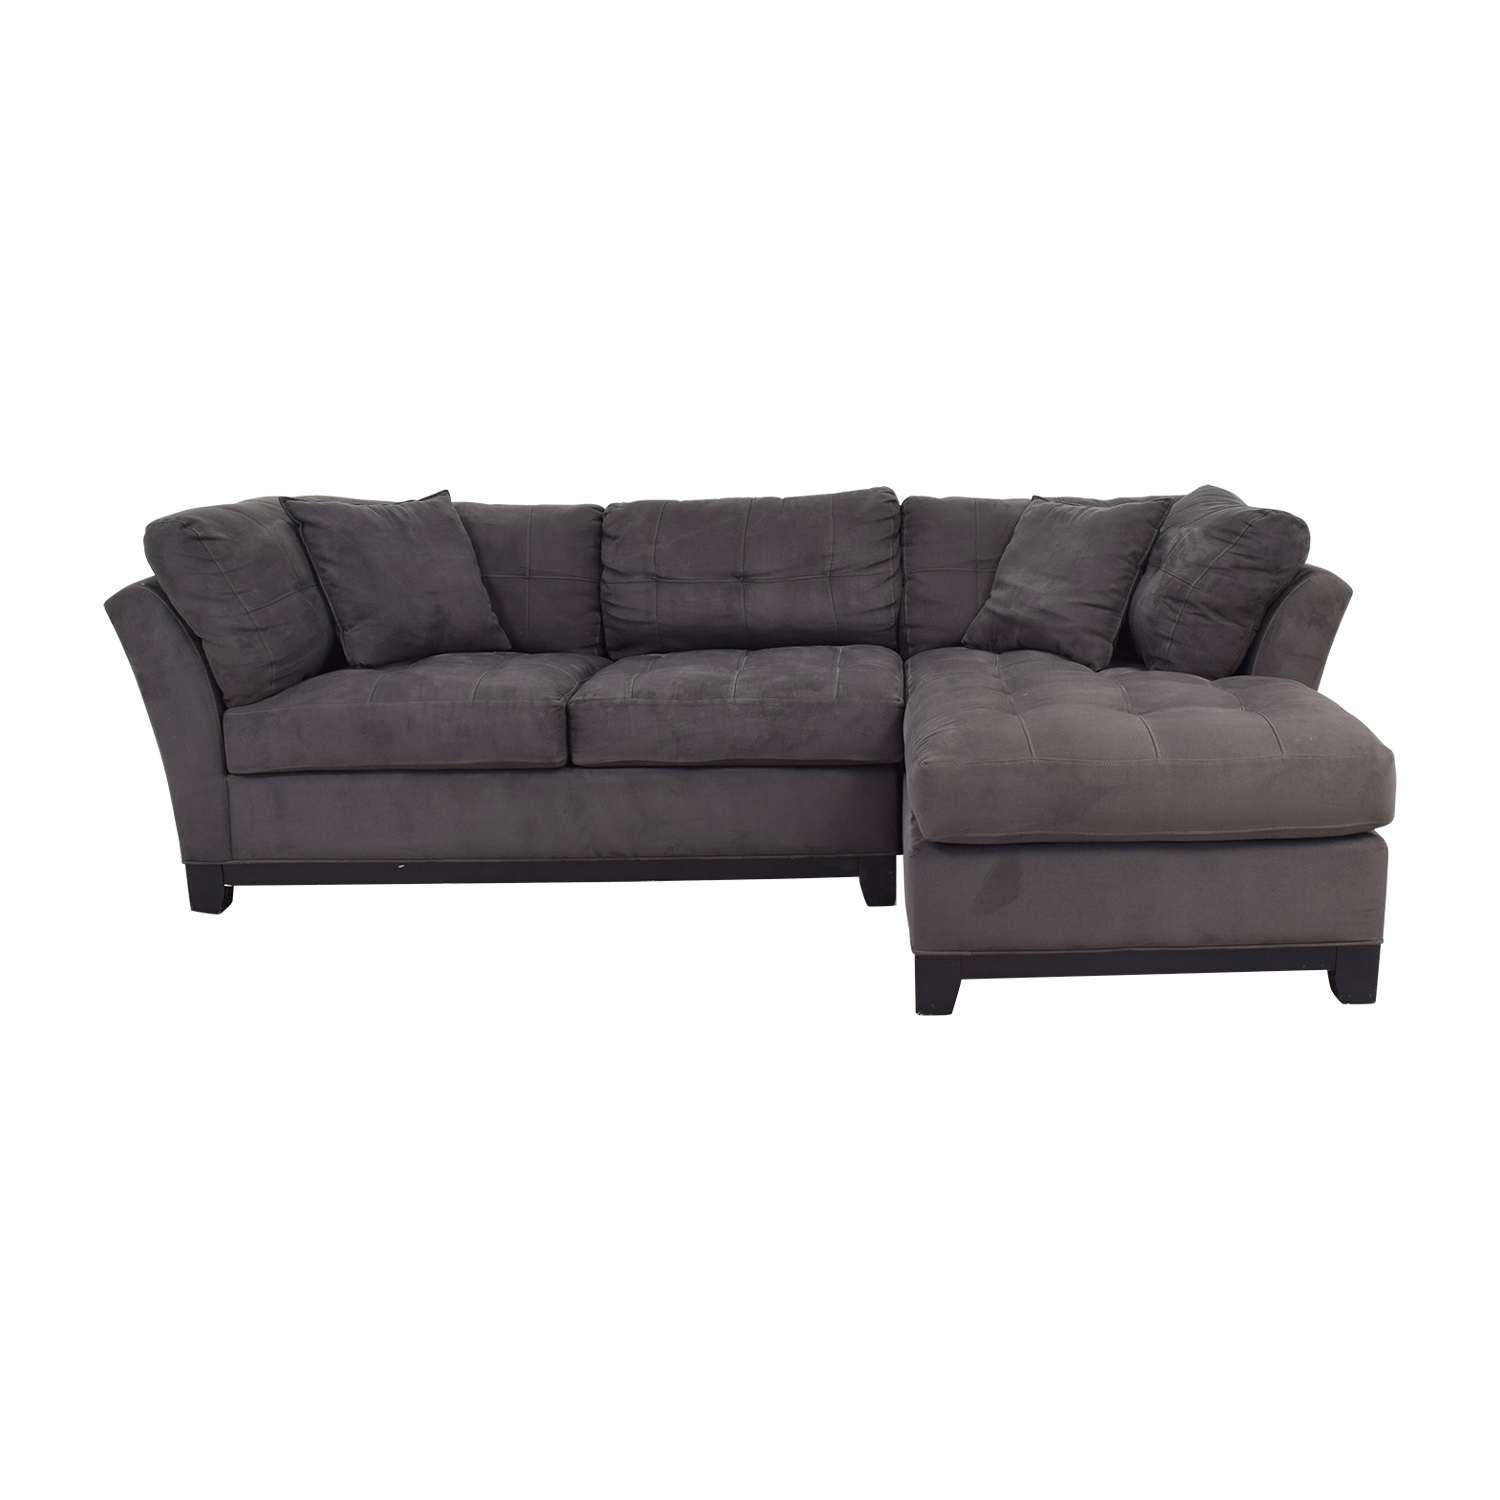 shop Raymour & Flanigan Charcoal Tufted Chaise Sectional Raymour & Flanigan